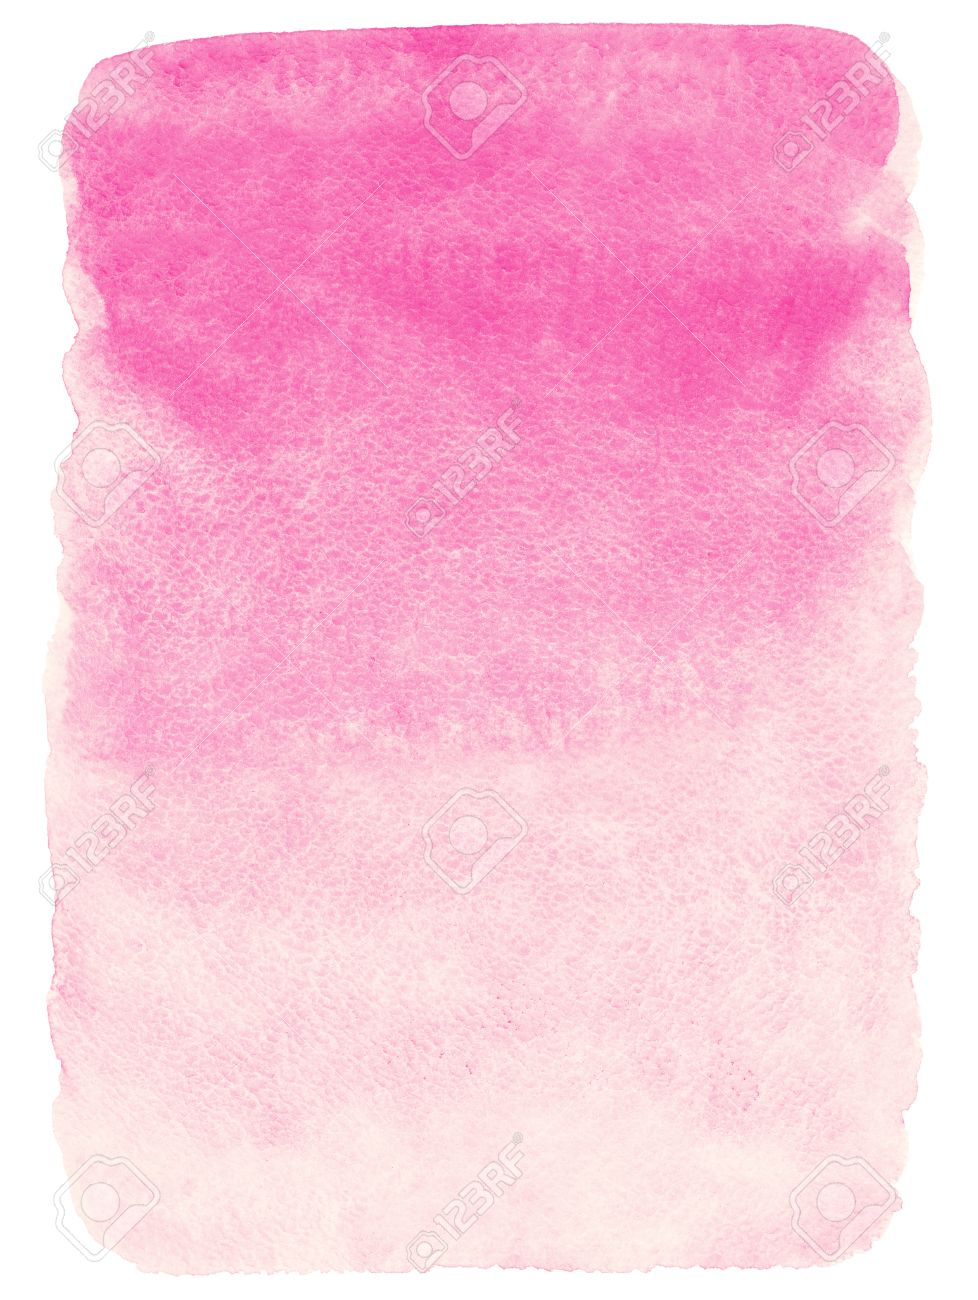 Artistic Style <b>Pink</b> Rose <b>Gradient Abstract Background</b> Stock Photo ...